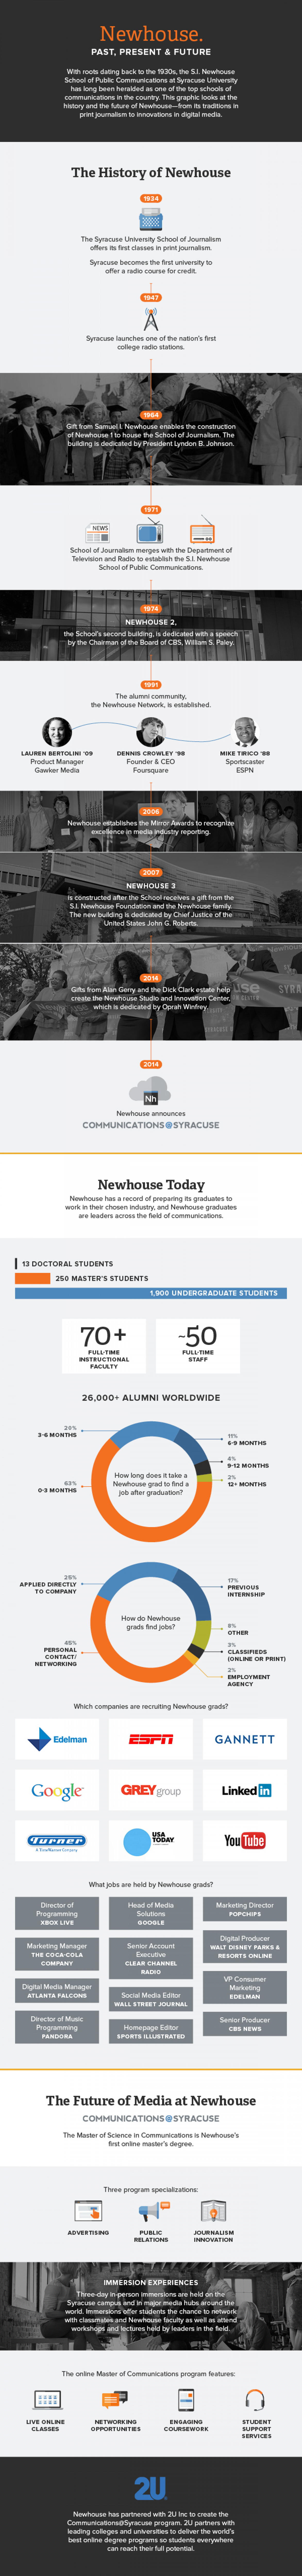 The History of Newhouse Infographic